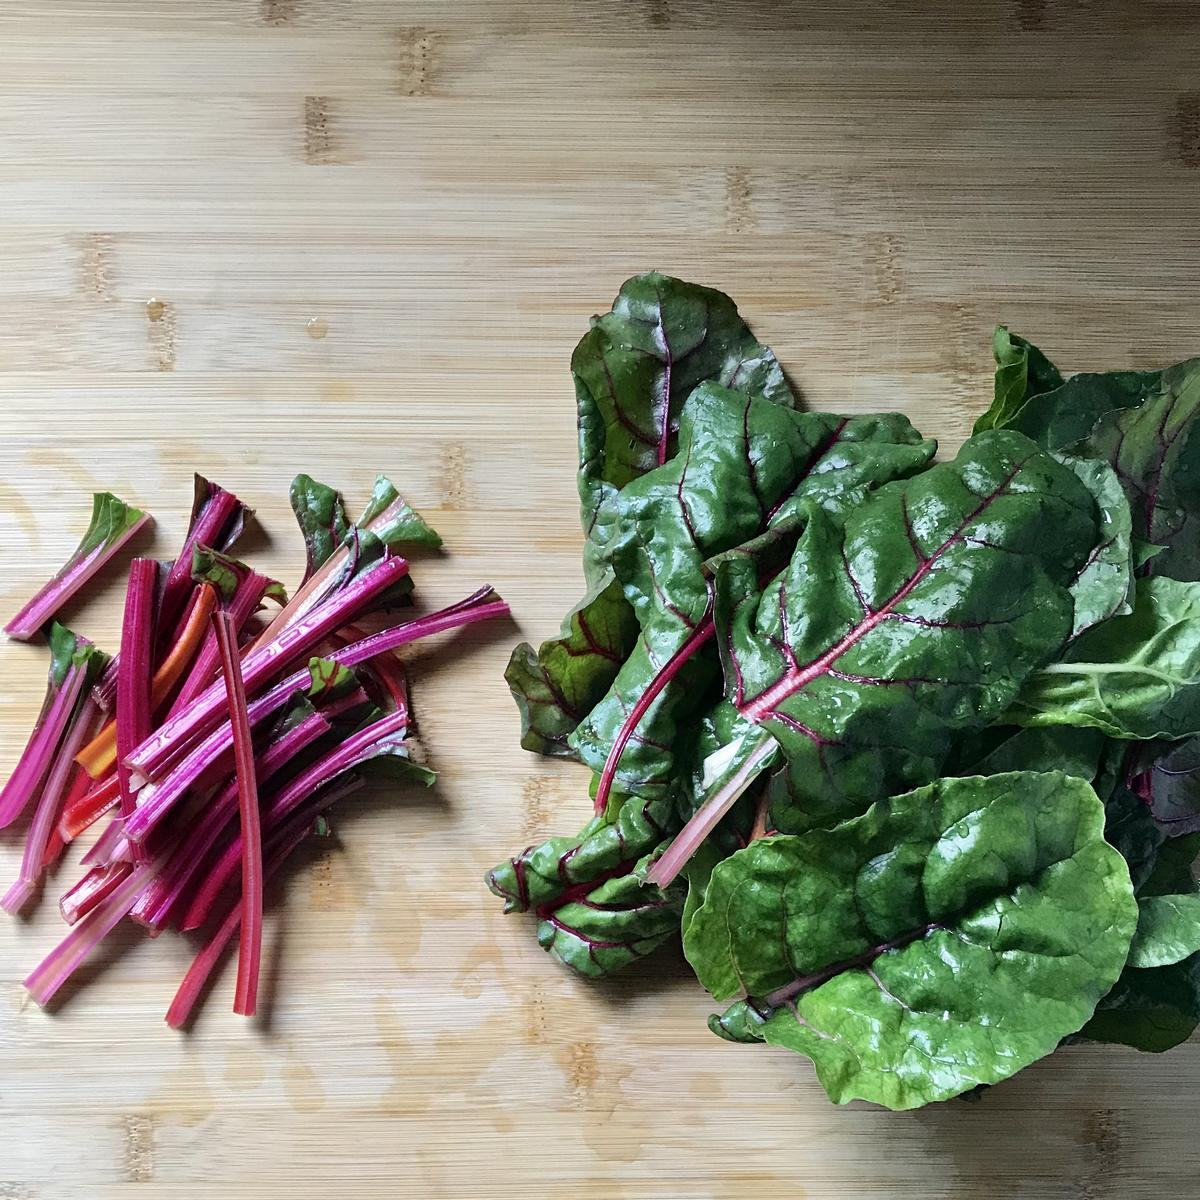 The stems and leaves of rainbow Swiss chard on a wooden board.